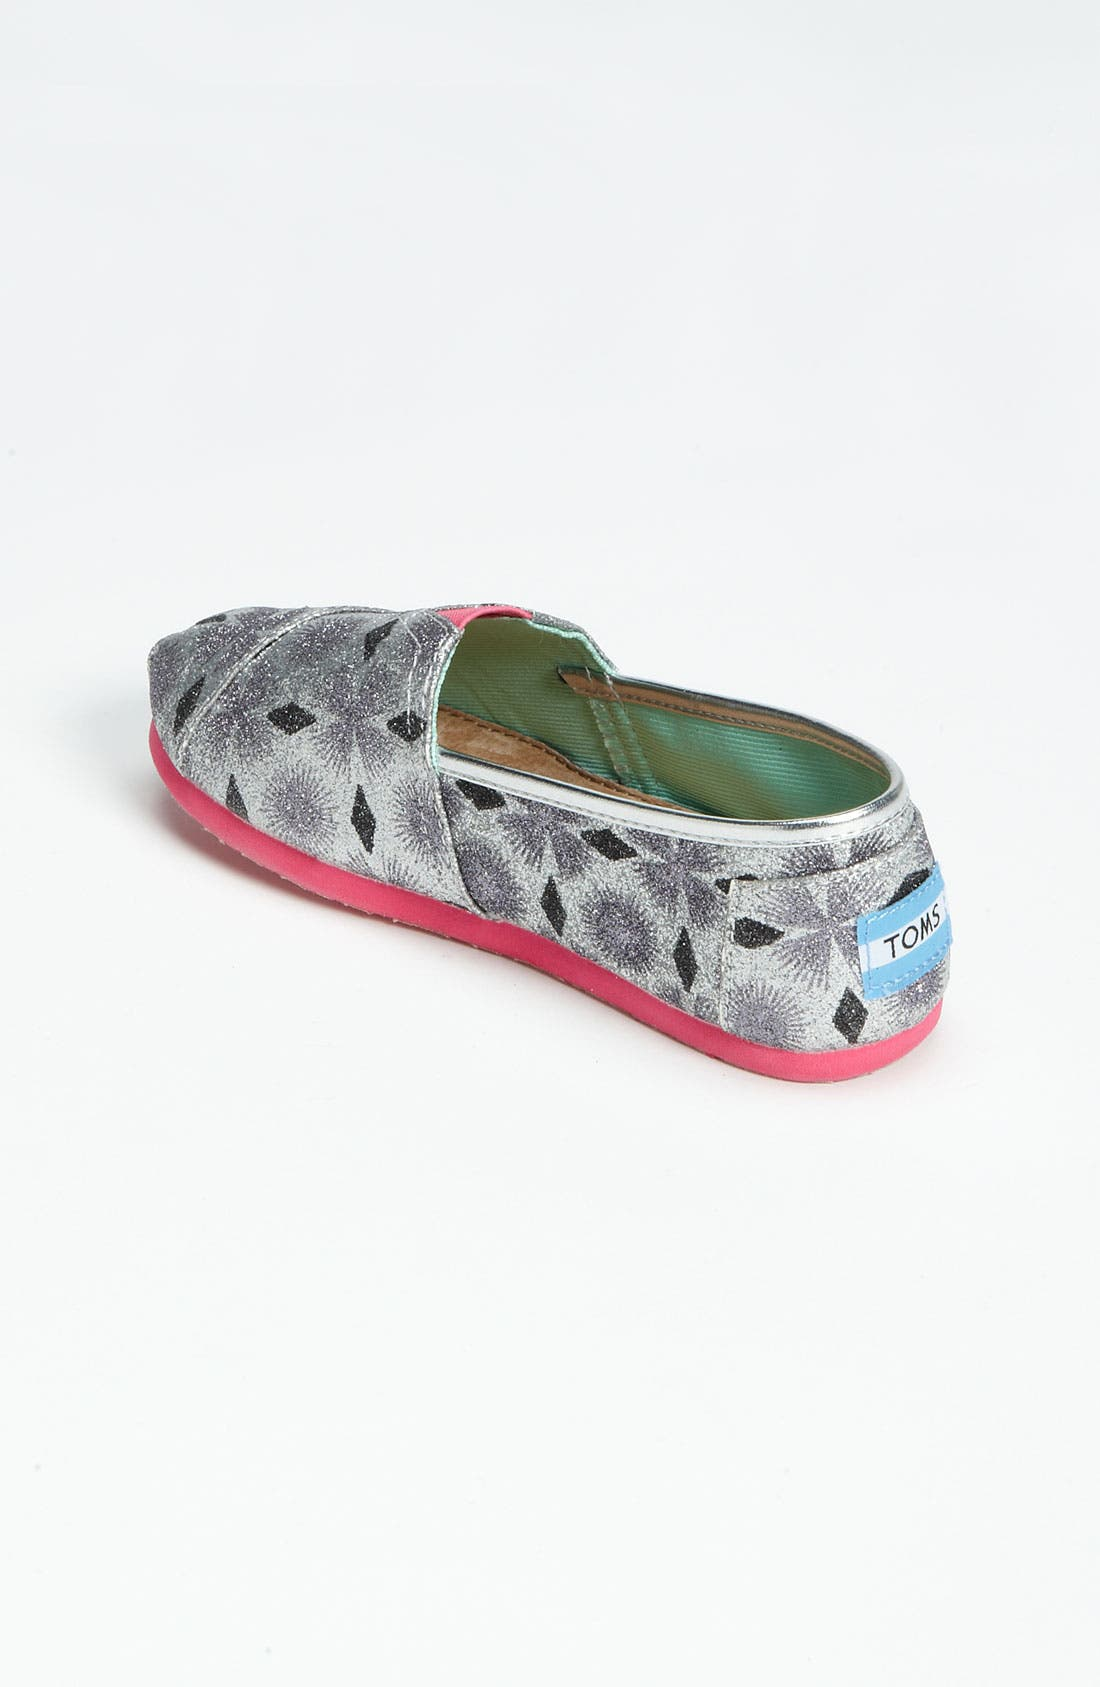 Alternate Image 2  - TOMS 'Classic Youth - Starburst' Slip-On (Little Kid & Big Kid) (Nordstrom Exclusive)